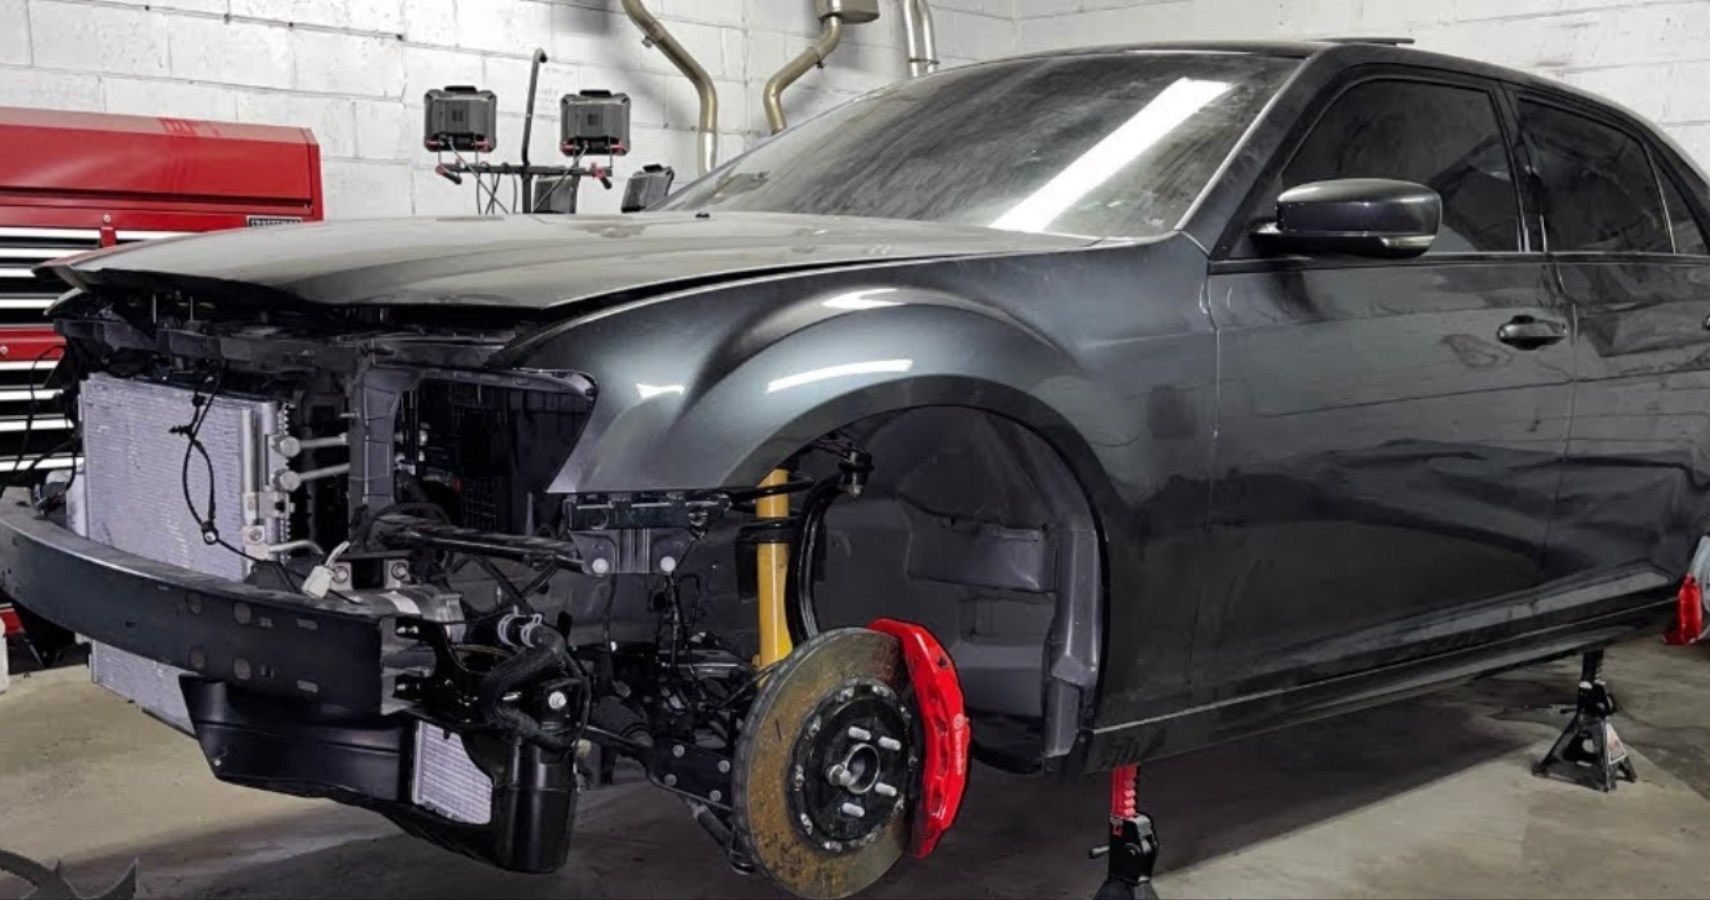 Hellcat-Swapped Chrysler 300 Nears Initial Start-Up | HotCars